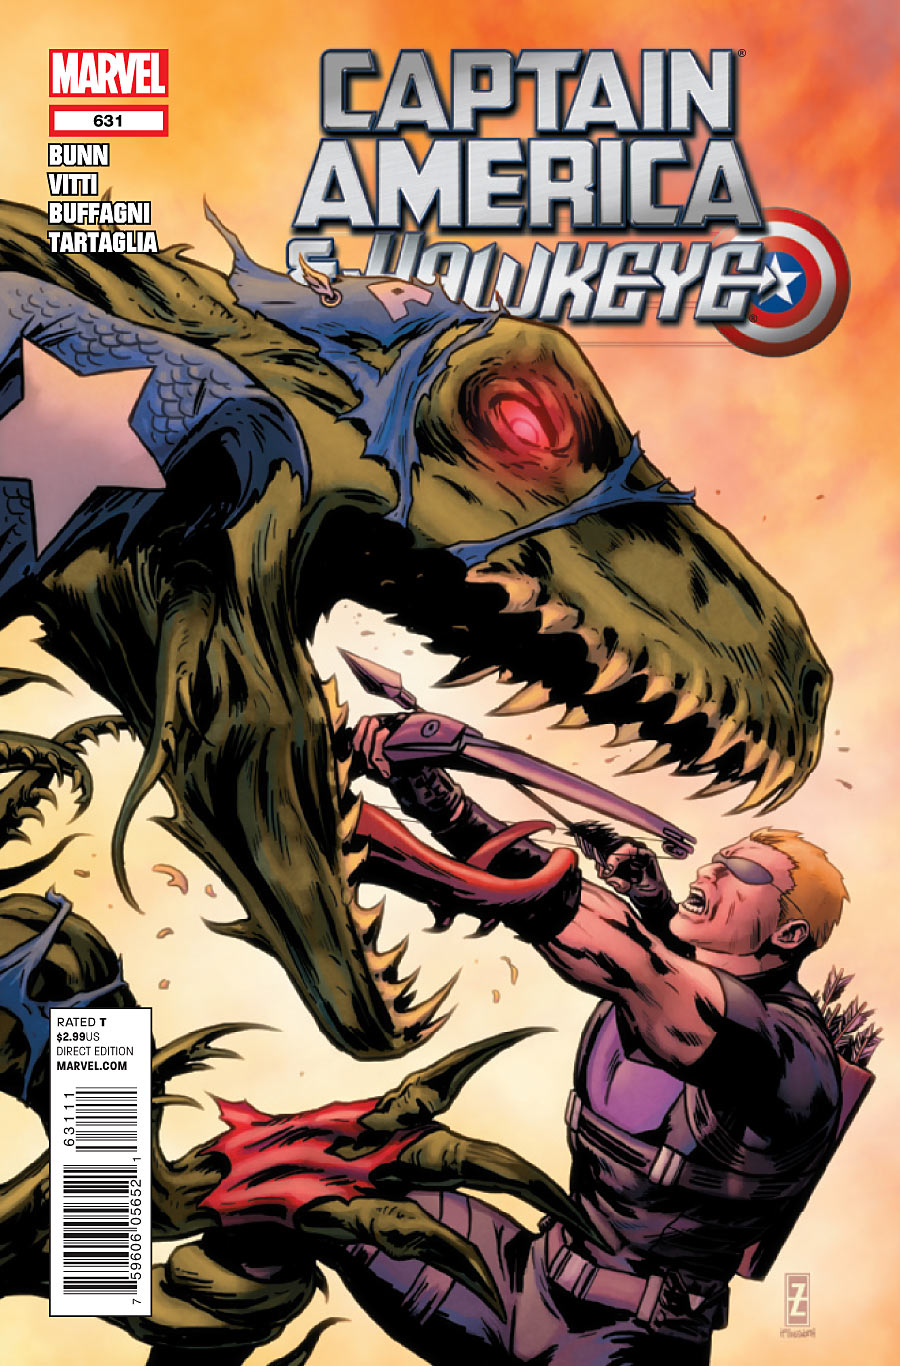 Captain America and Hawkeye Vol 1 631